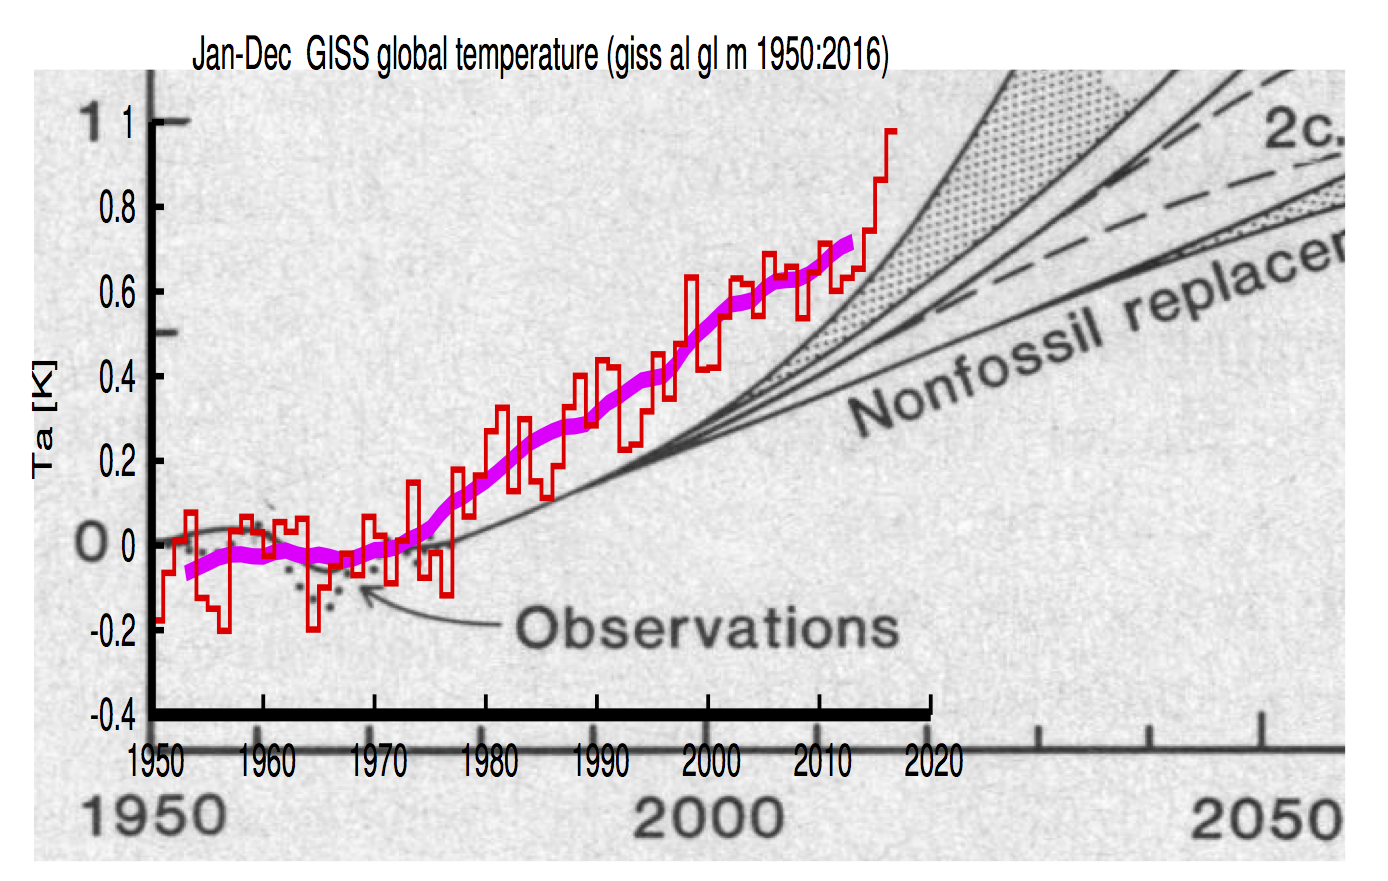 Climate model projections compared to observations